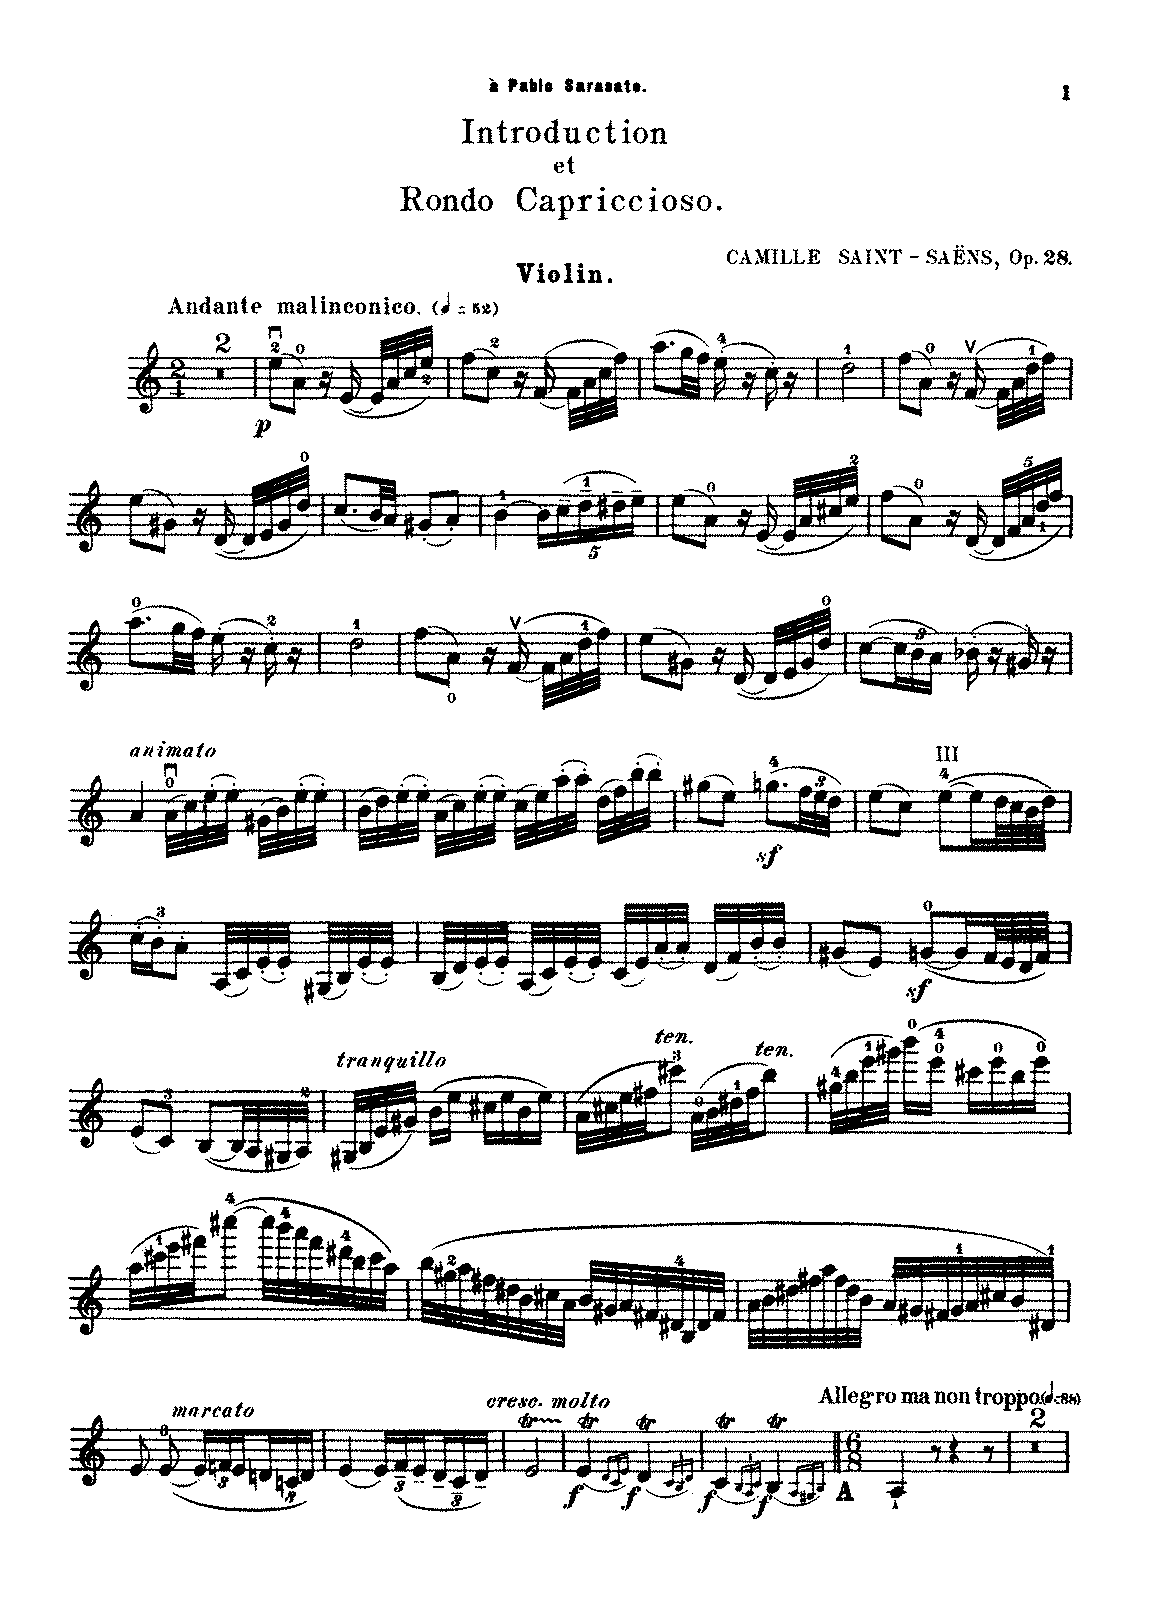 PMLP10270-Saint-Saëns - Introduction et Rondo Capriccioso, Op. 28 (arr. violin and piano).pdf